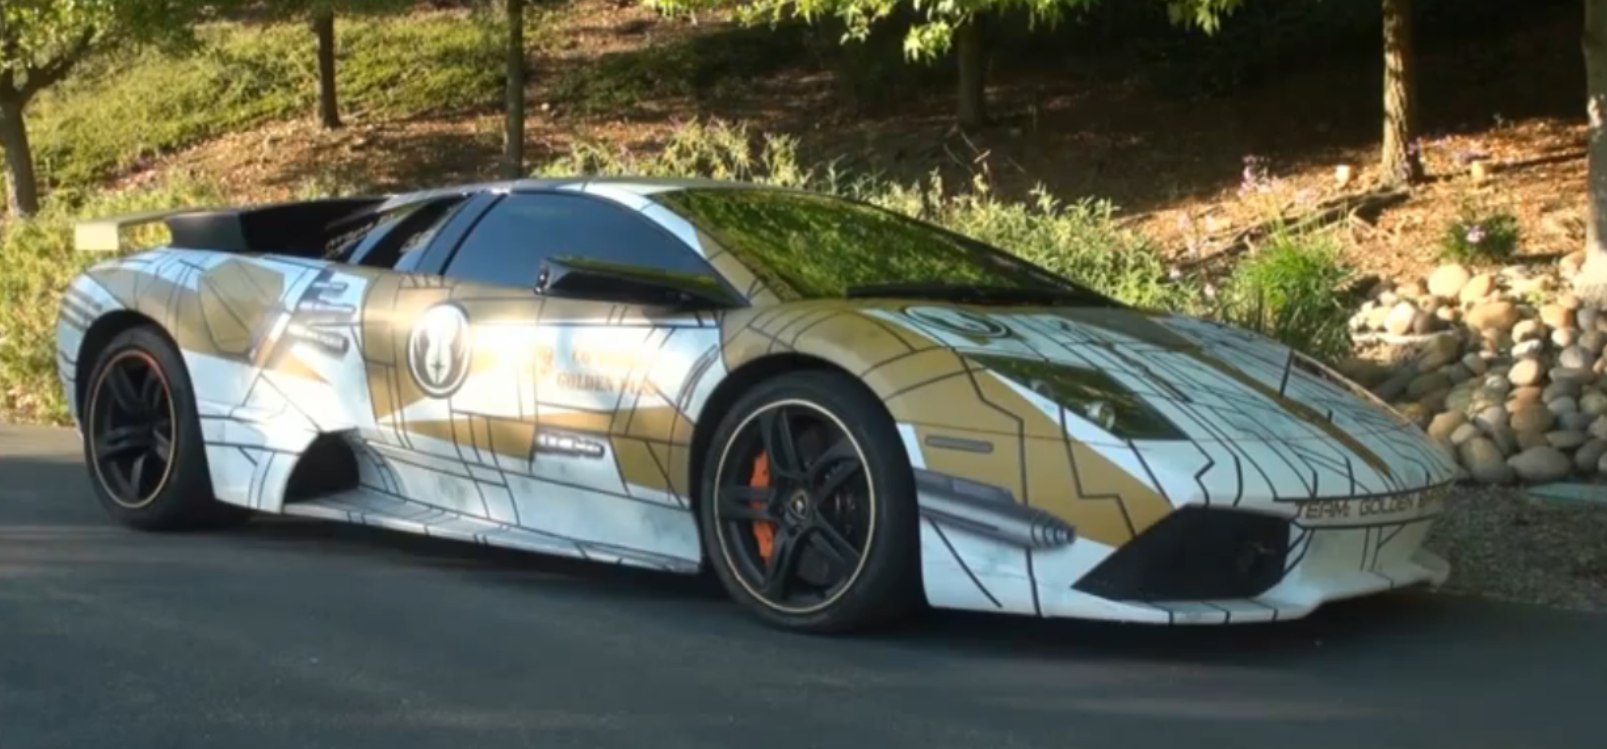 The Force Is Strong With Star Wars Themed Lamborghini